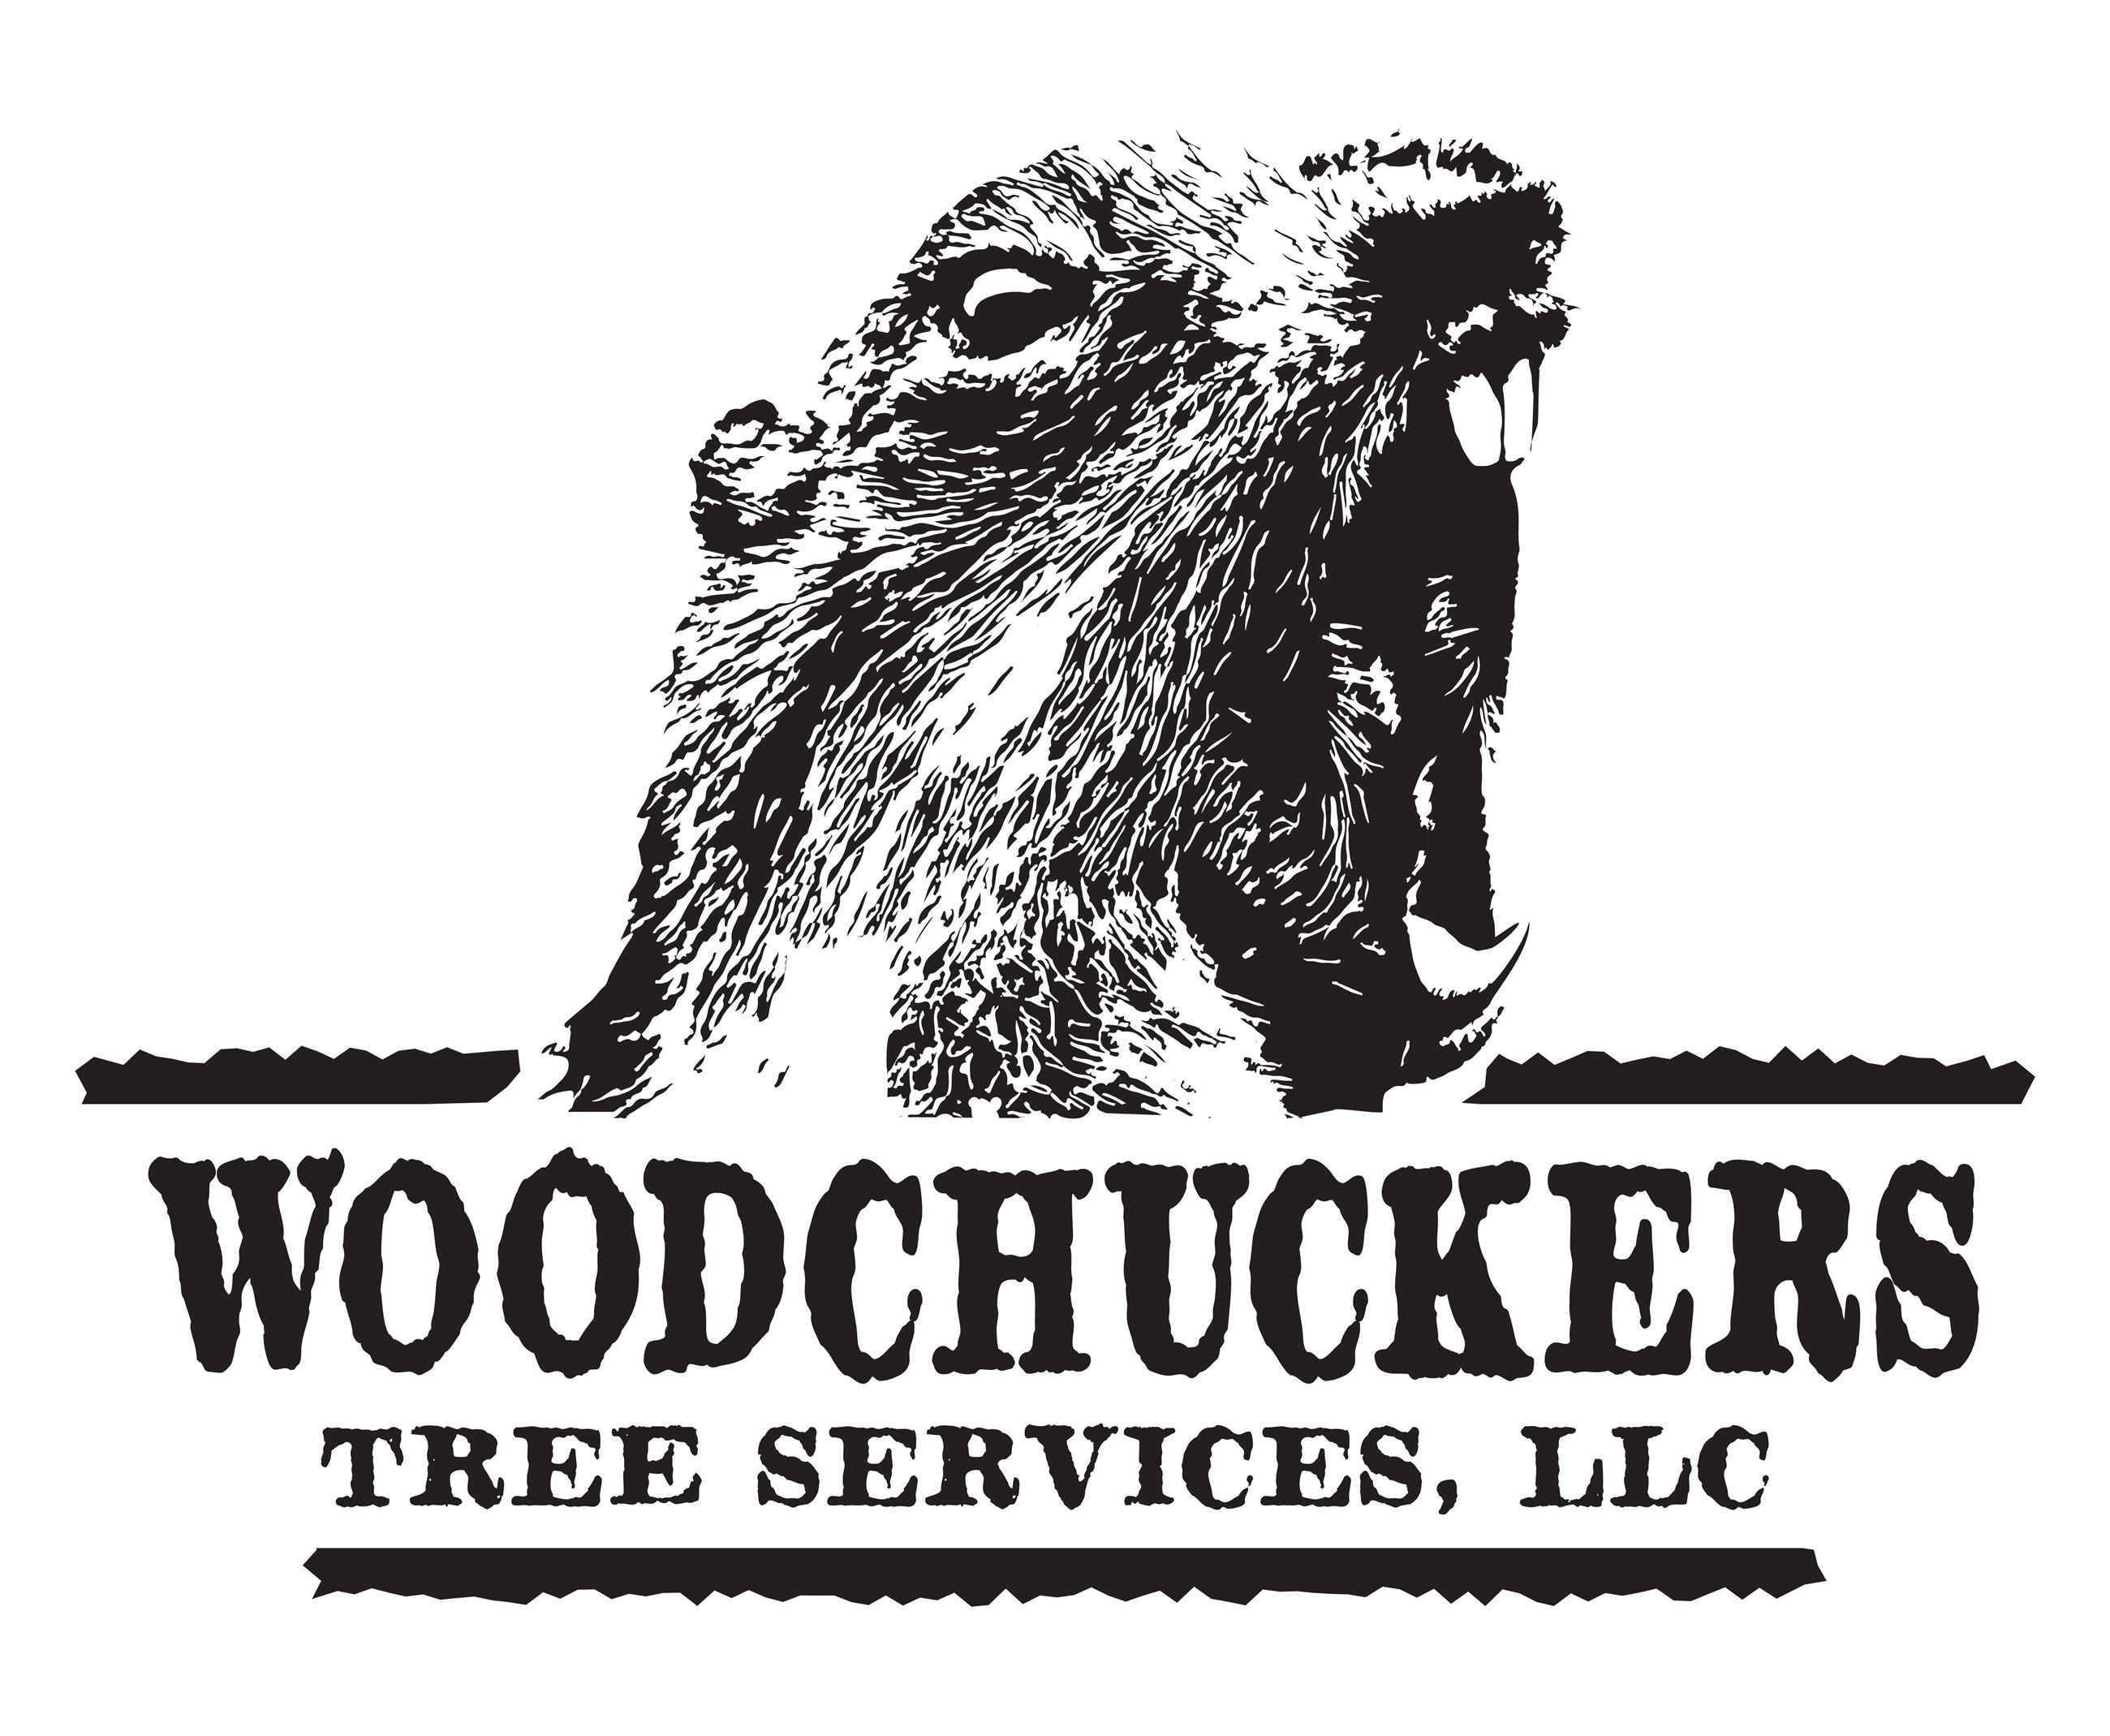 Woodchuckers Tree Services Company Image